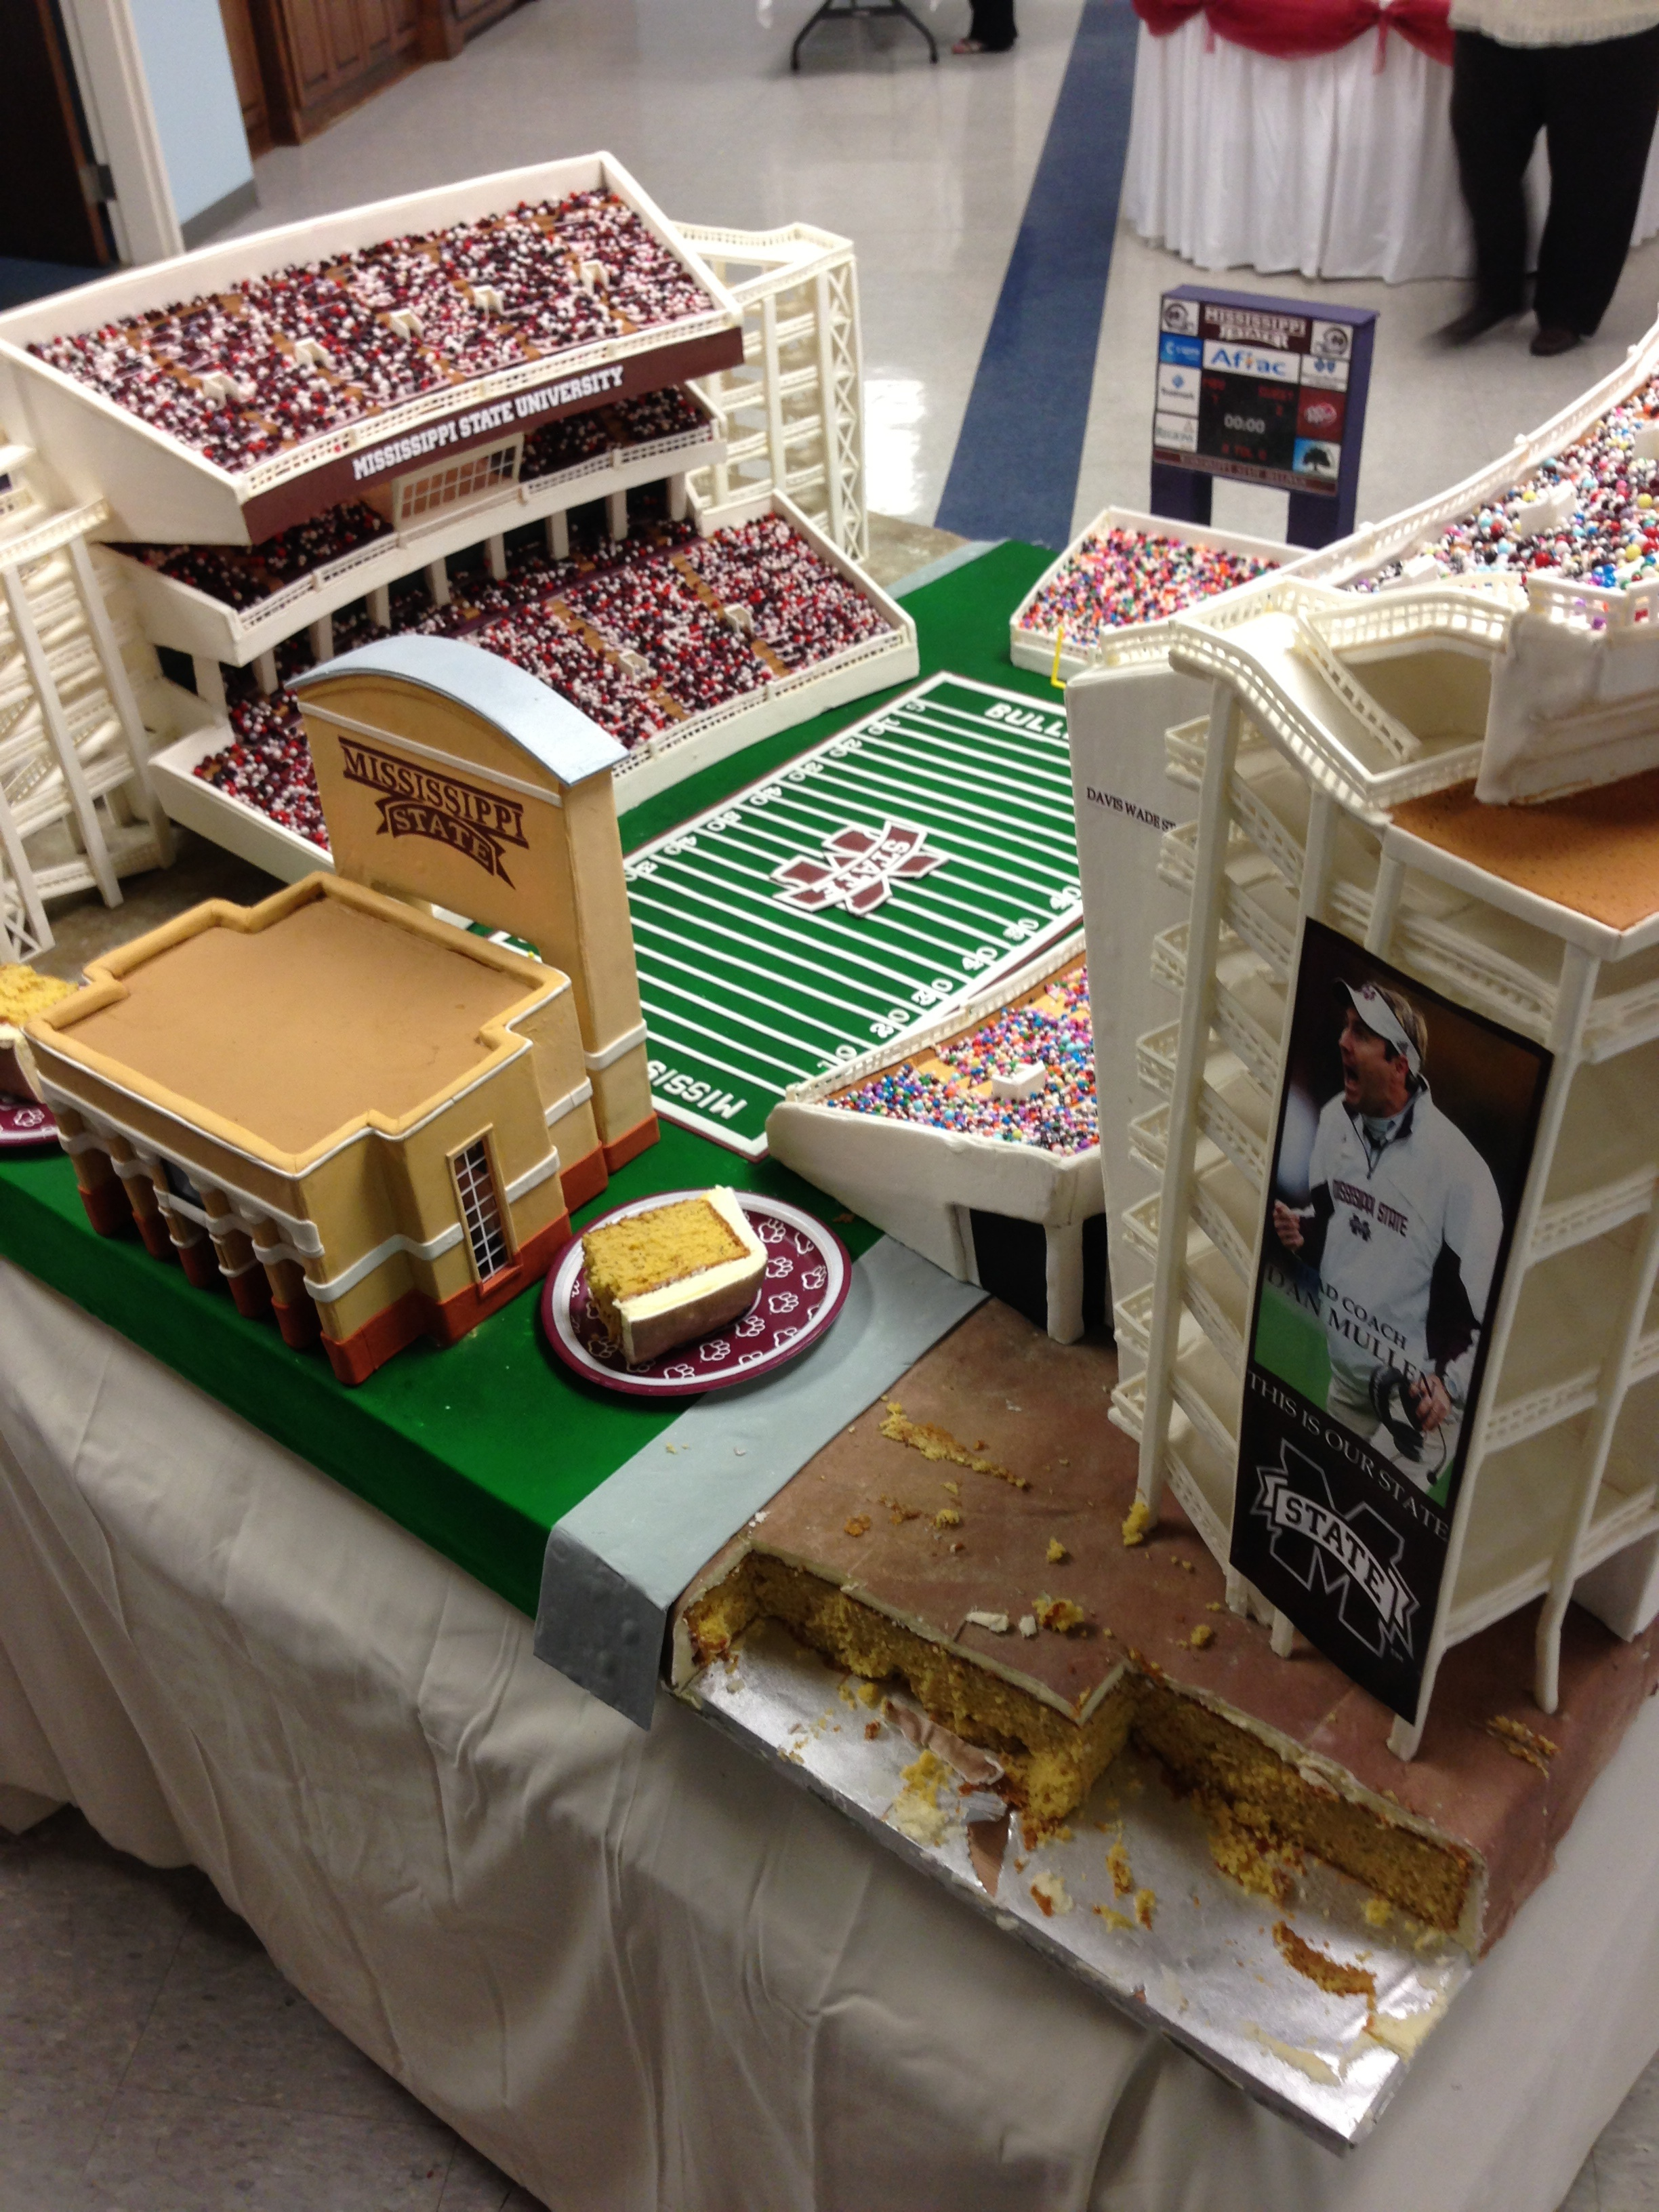 Groom S Cake Is Replica Of Mississippi State Football